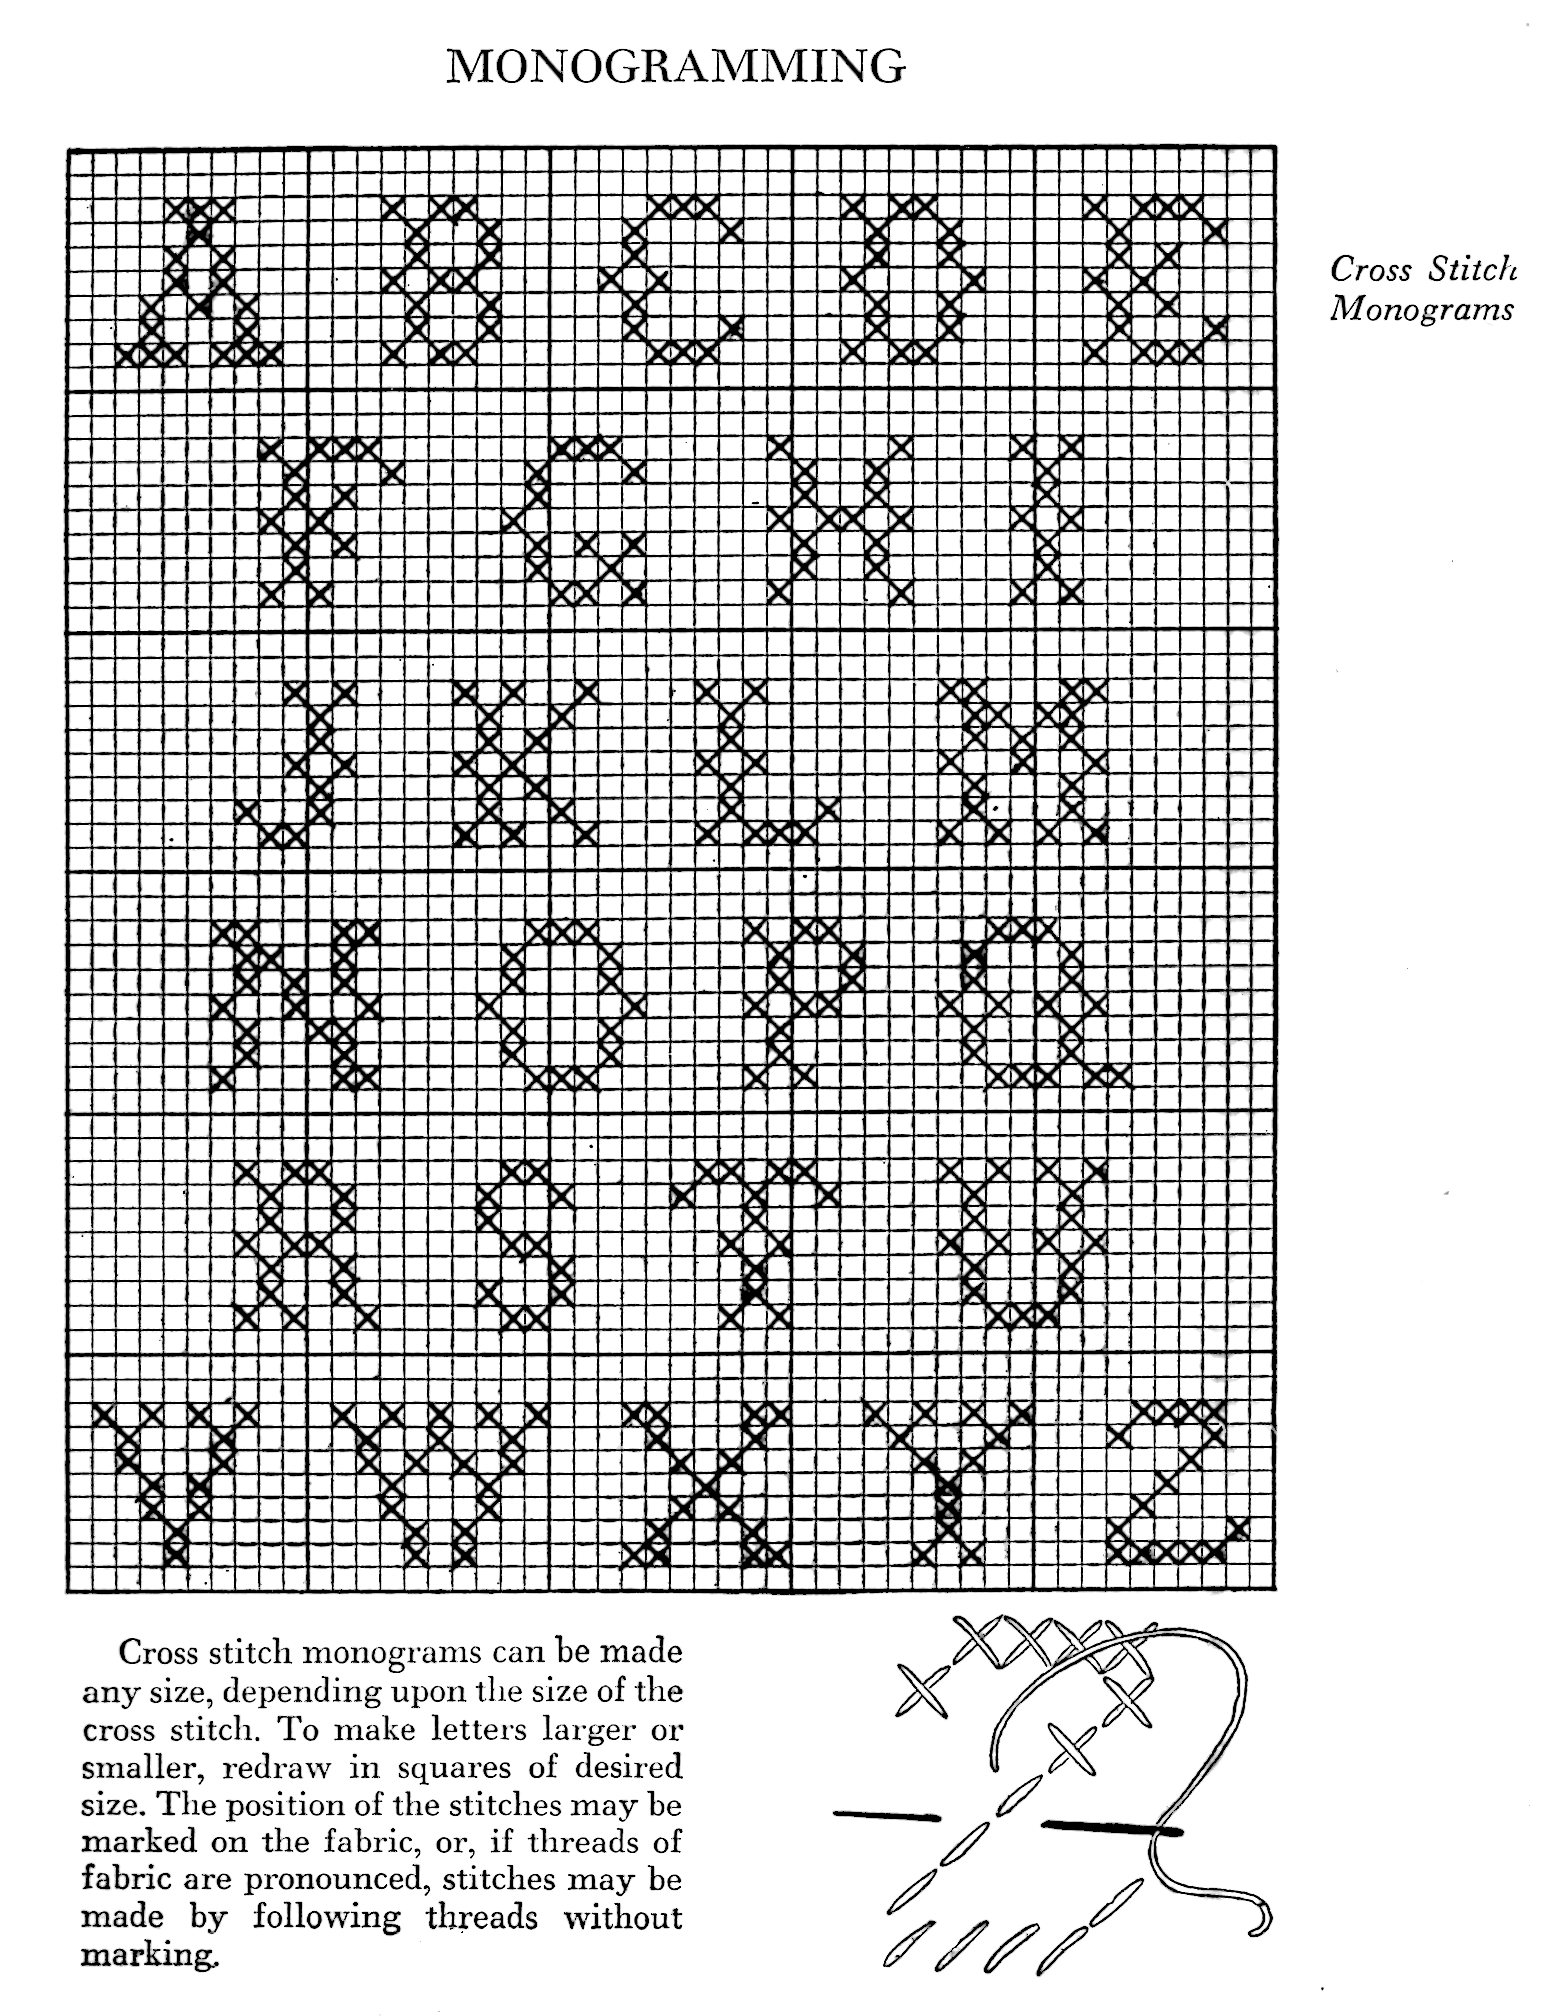 Cross Stitch Alphabet Chart For Monograms Vintage Crafts And More